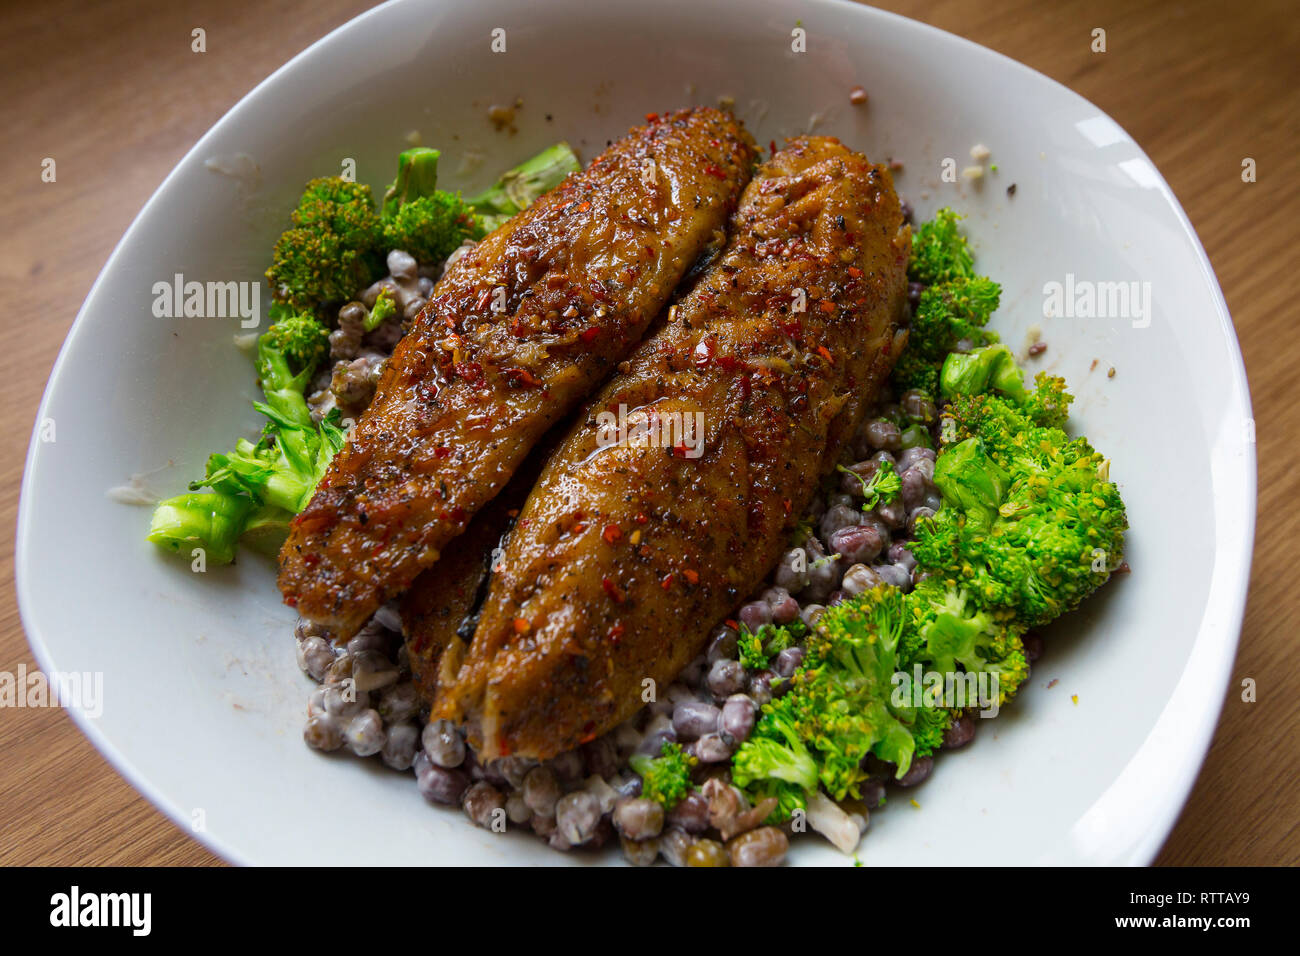 recipe, piri piri, sauce, mackeral, fish, dish, food, lunch, dinner, supper, cooked, home, - Stock Image